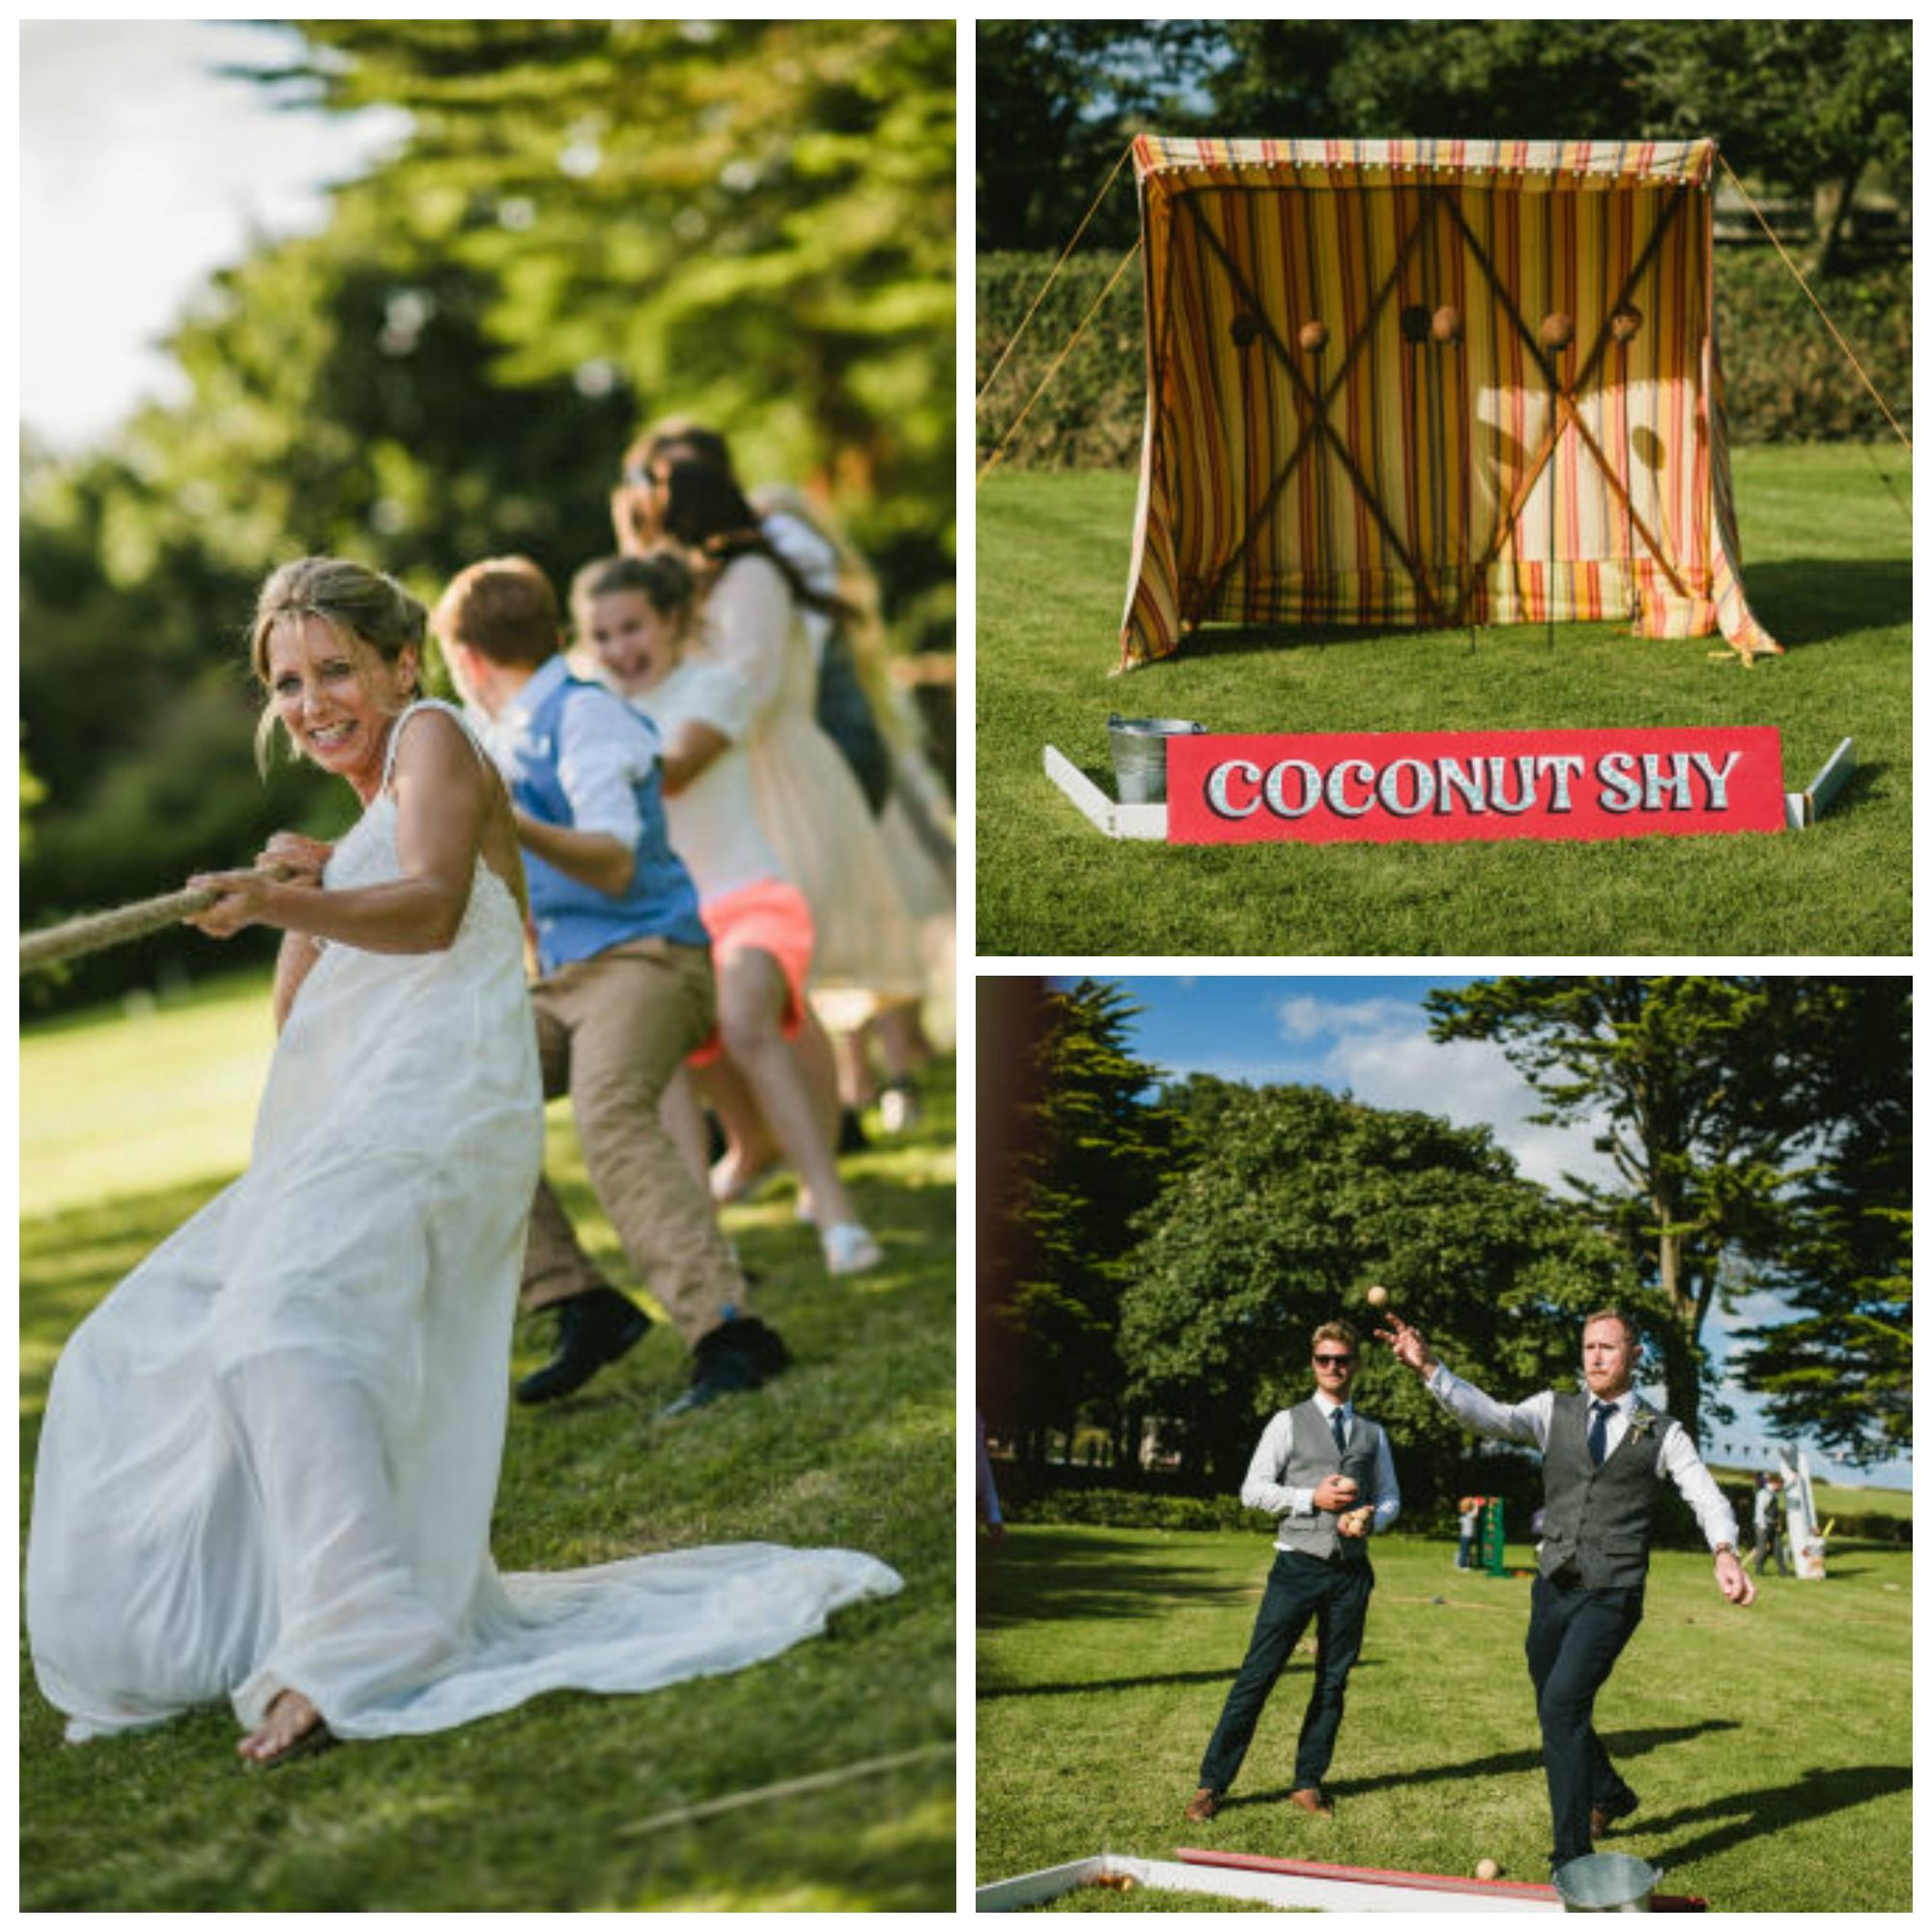 Great Fun For Wedding Guests And Fantastic Photos With Traditional Games Like Coconut Shies Tug